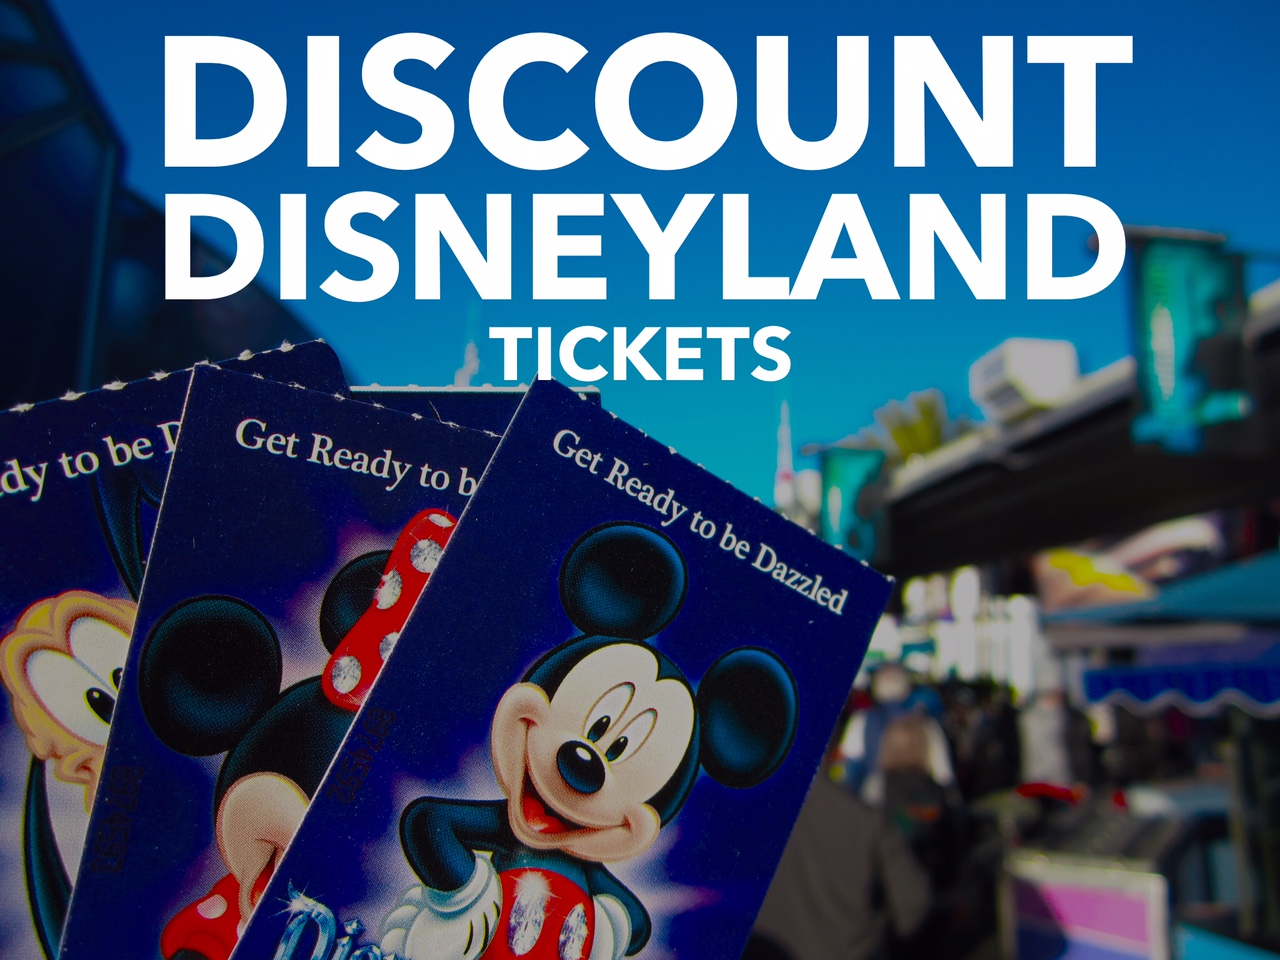 Finding Discount Disneyland Tickets Getting Them Cheap